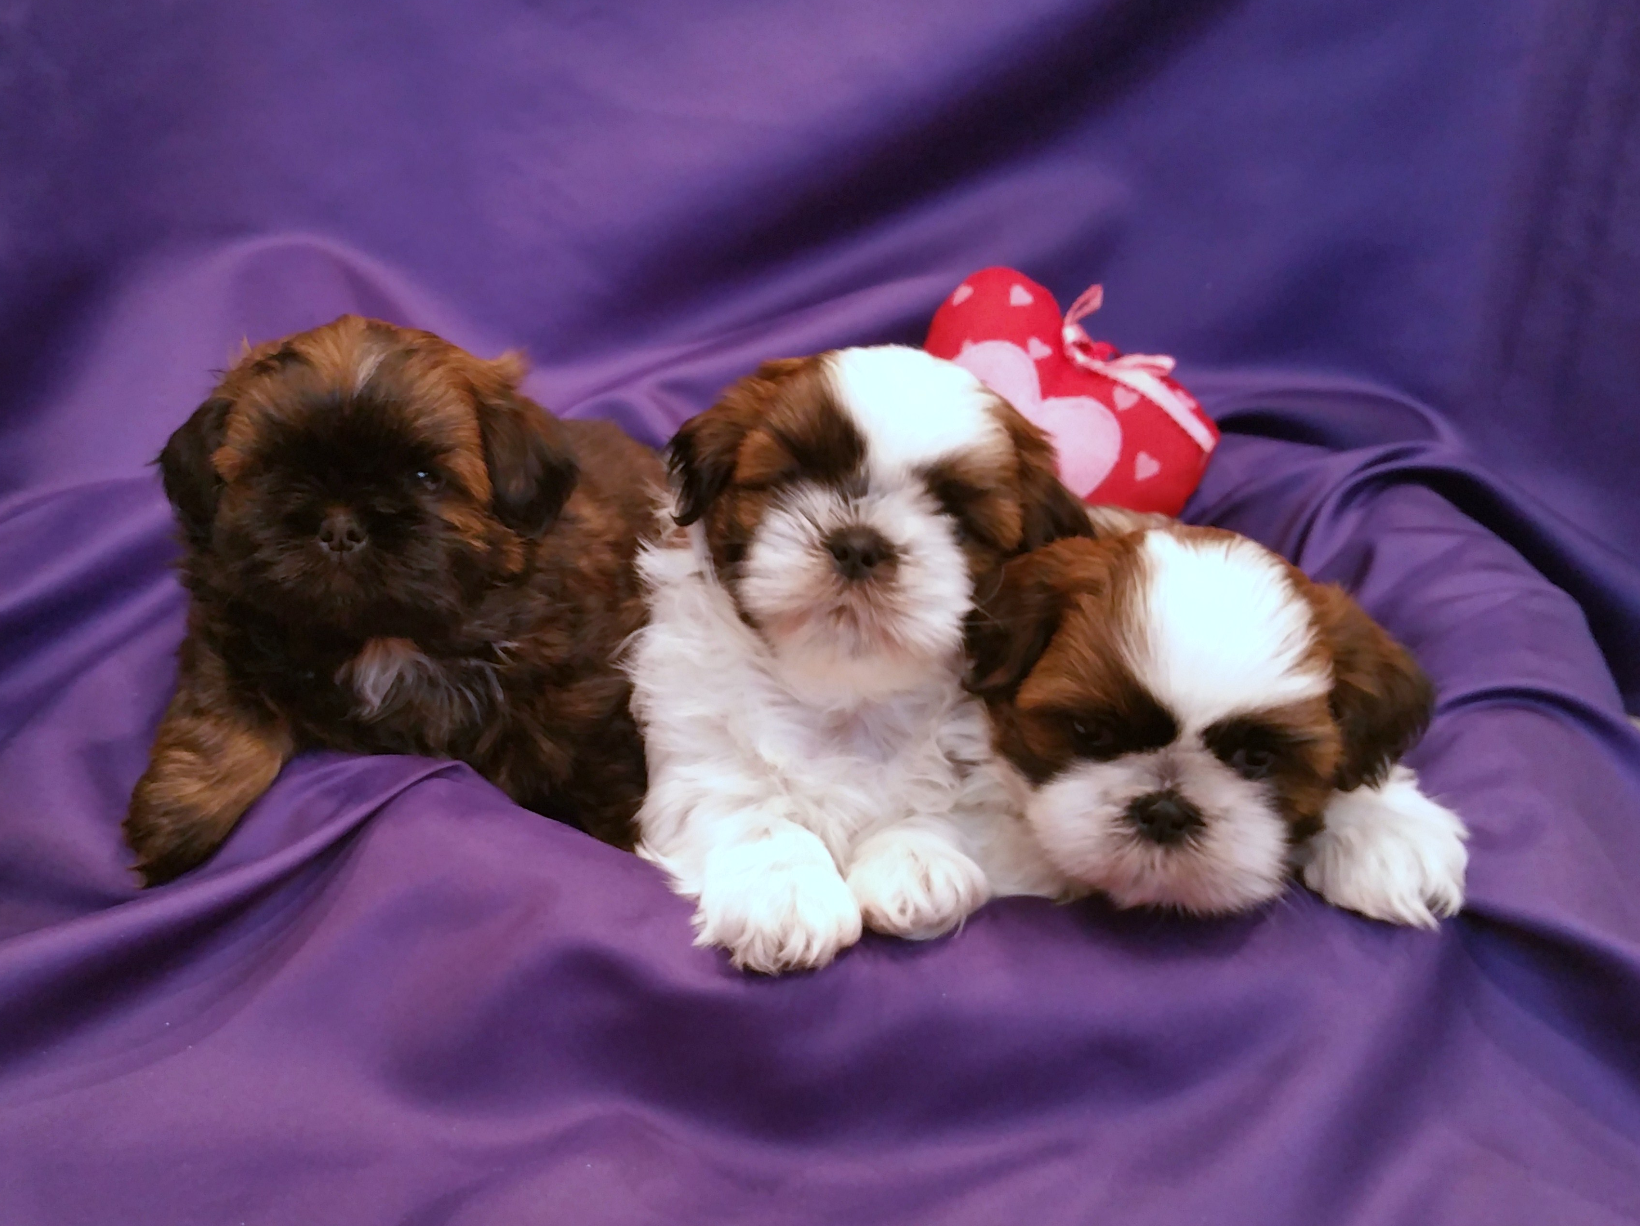 Sugarandspiceshihtzuscom Utah Shihtzu Puppies Akc Registered